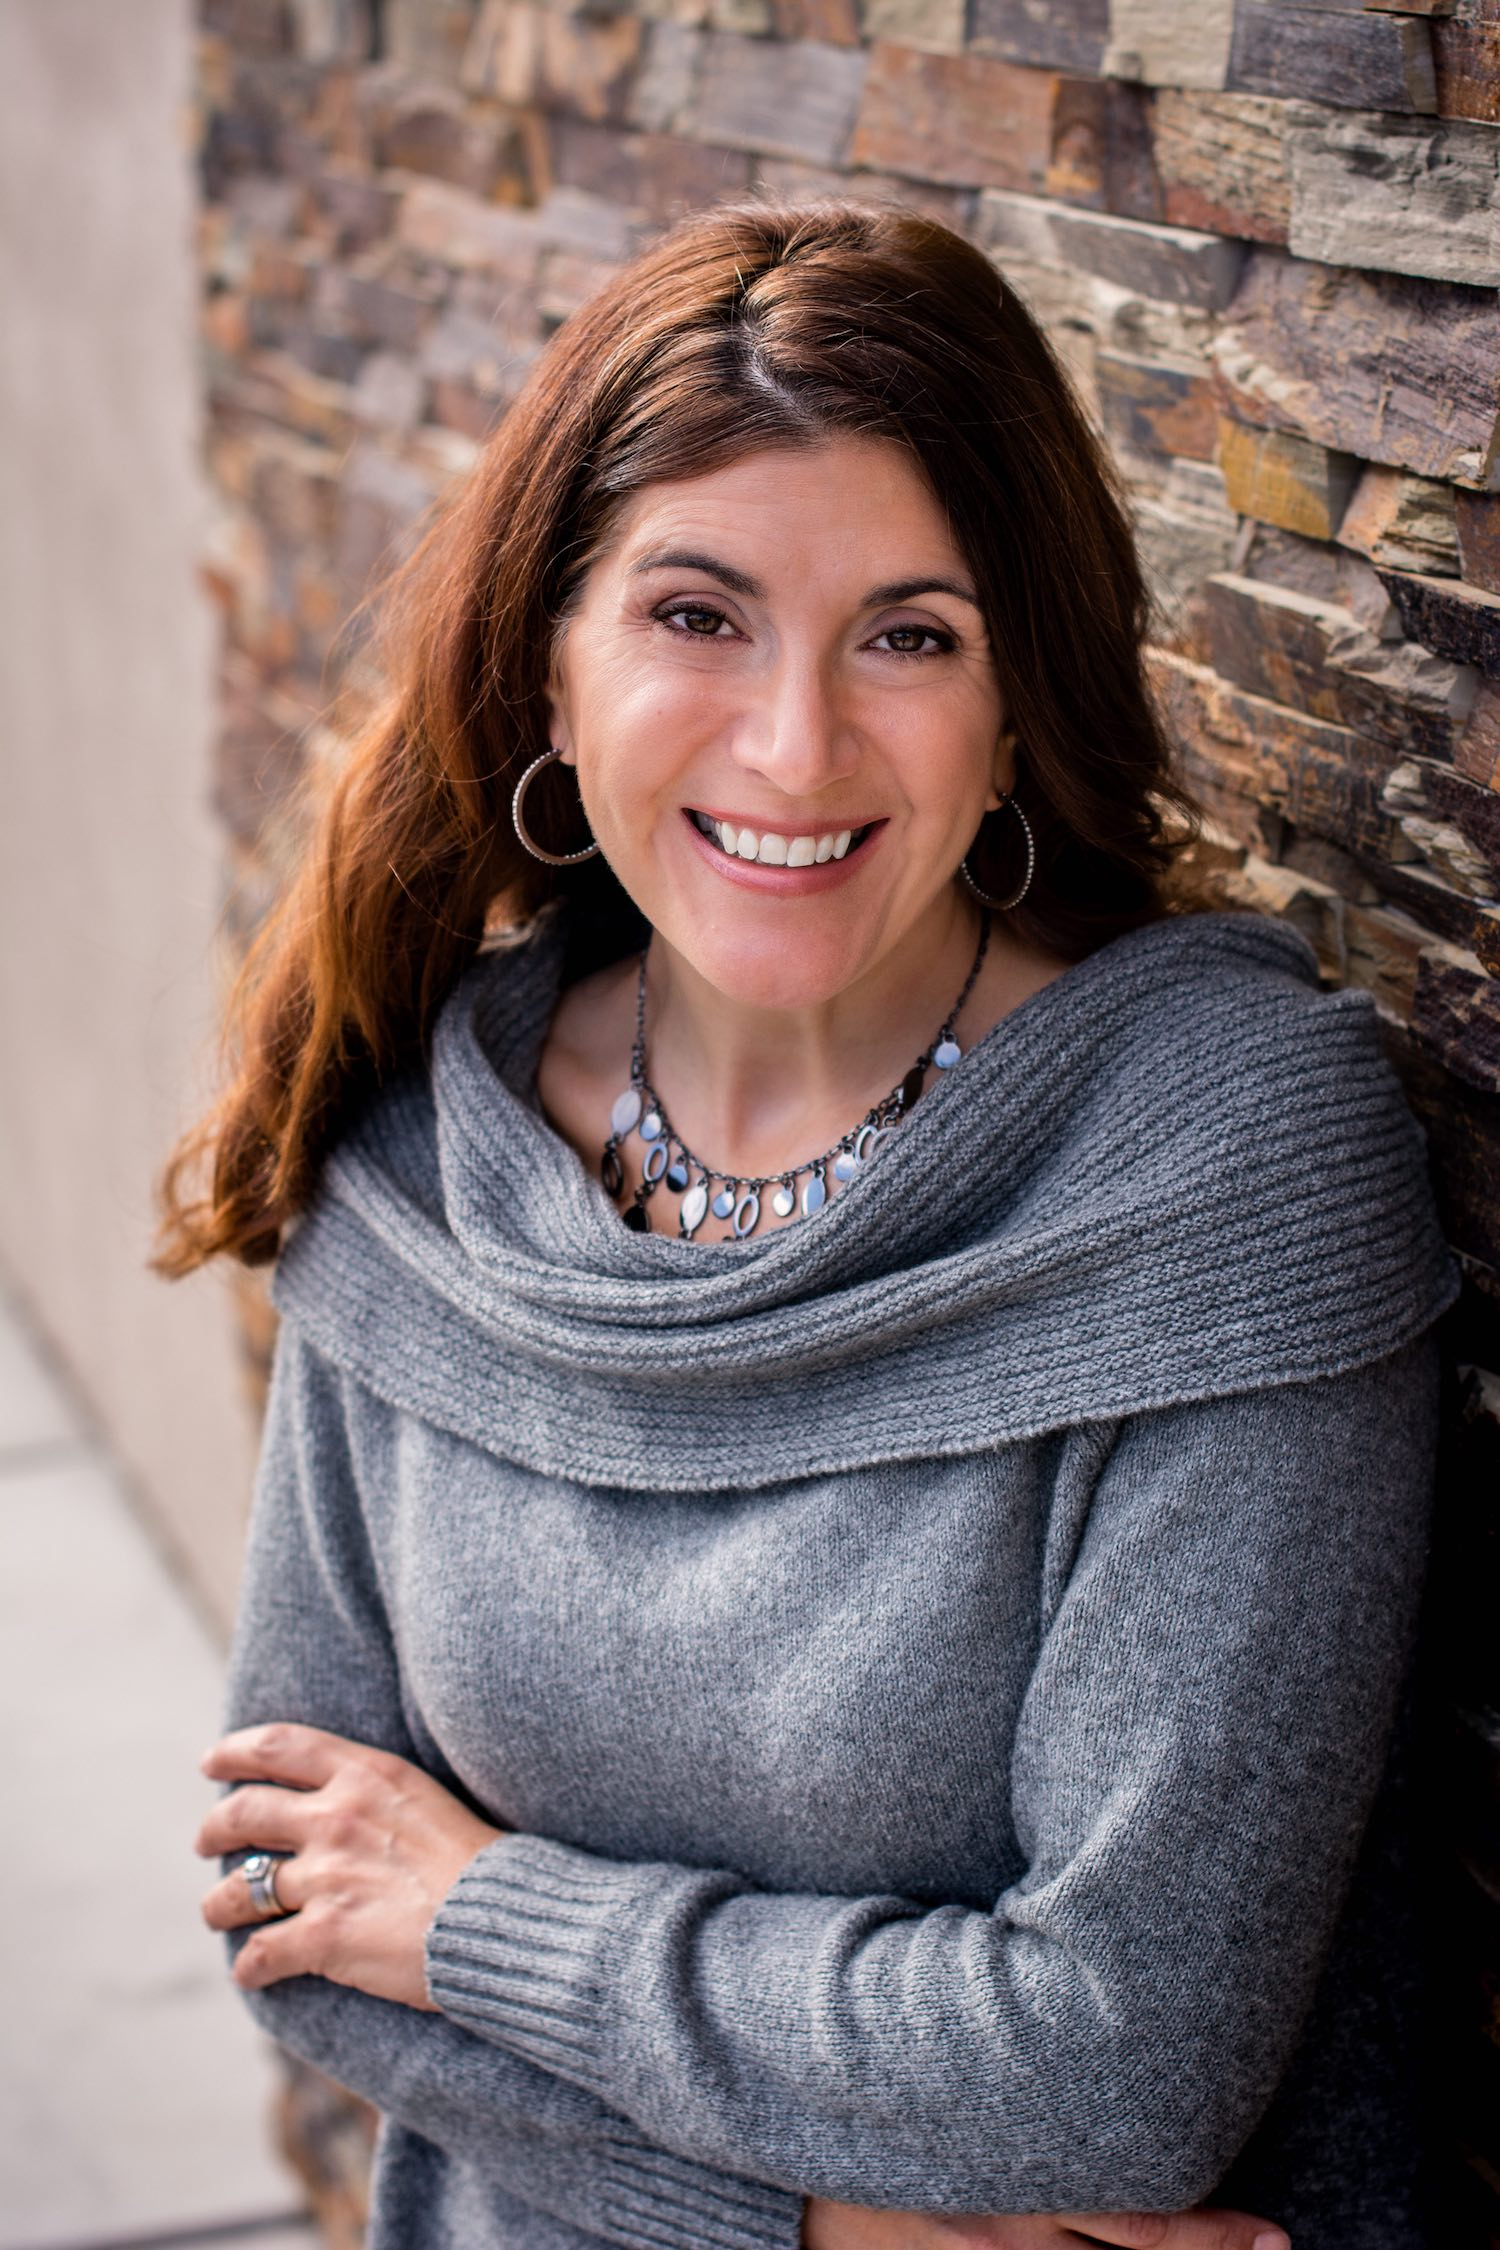 - Kate Fraiser is a wife and mom fielding the world of co-parenting. She is a Pastor's wife, Mom of teens, Director of Early Childhood Ministries and homeschools her children. You can check out more from Kate here at ConnectPointMoms.com